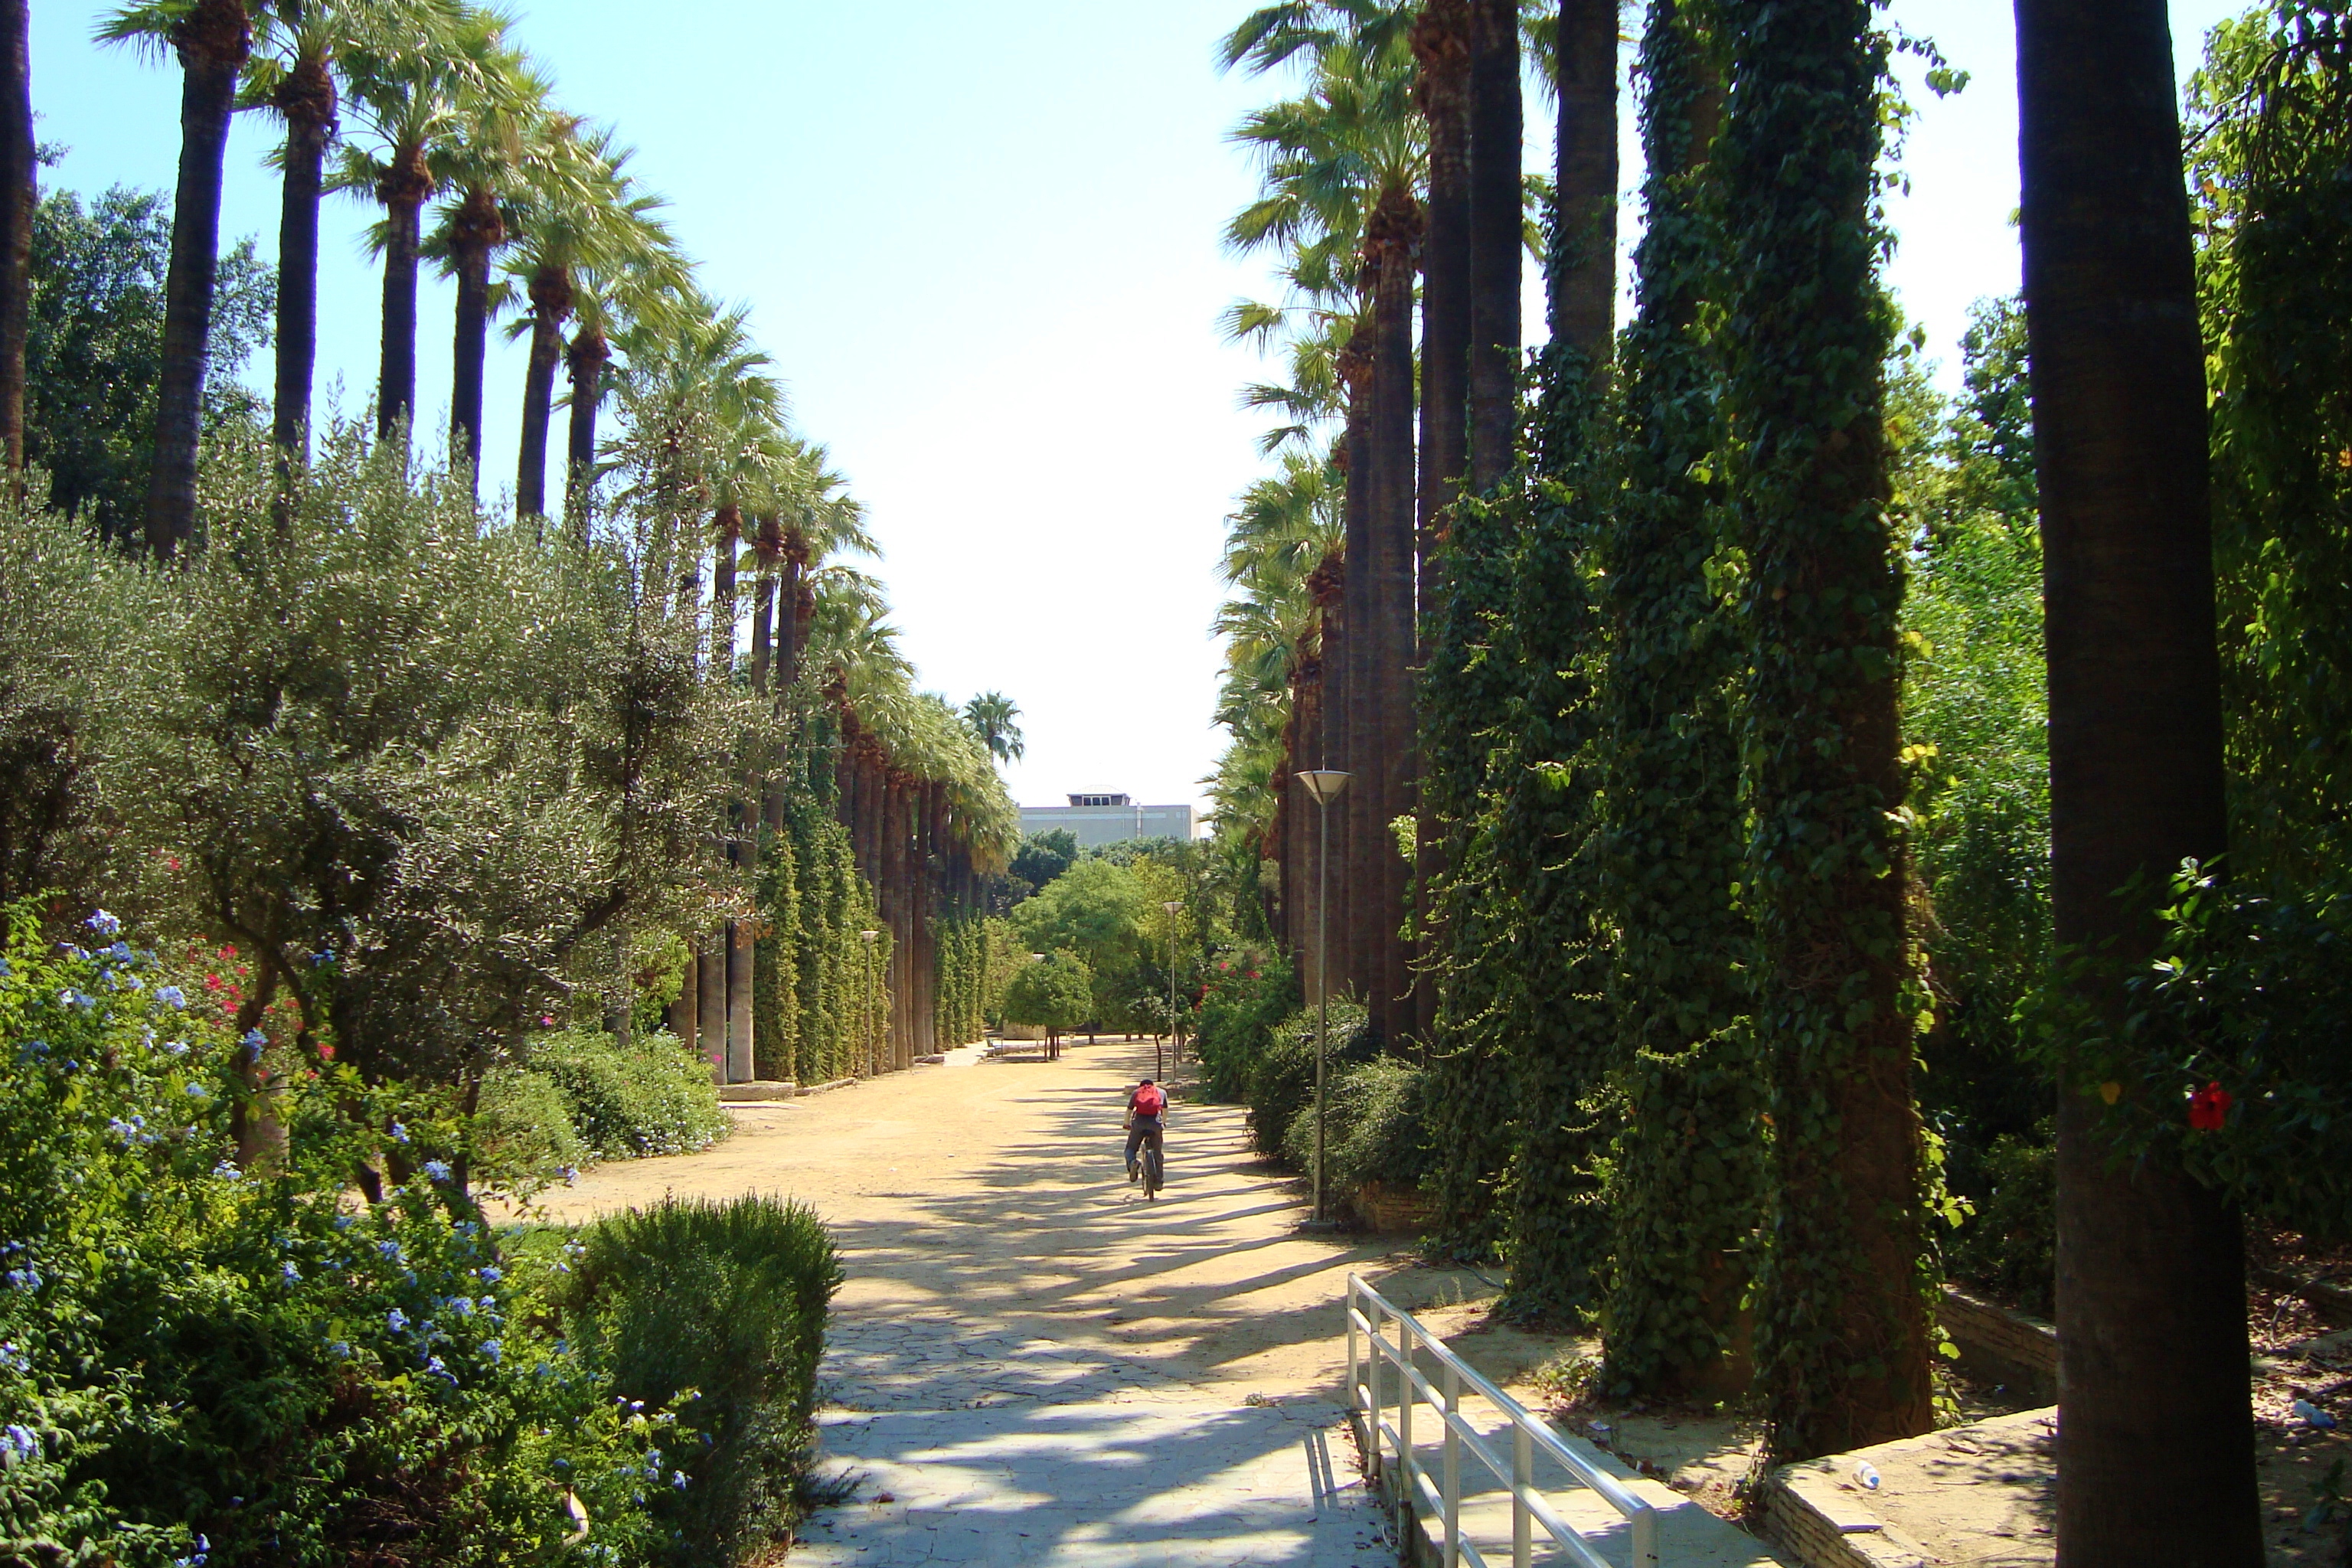 File:Nicosia Historical Municipal Gardens In Republic Of Cyprus